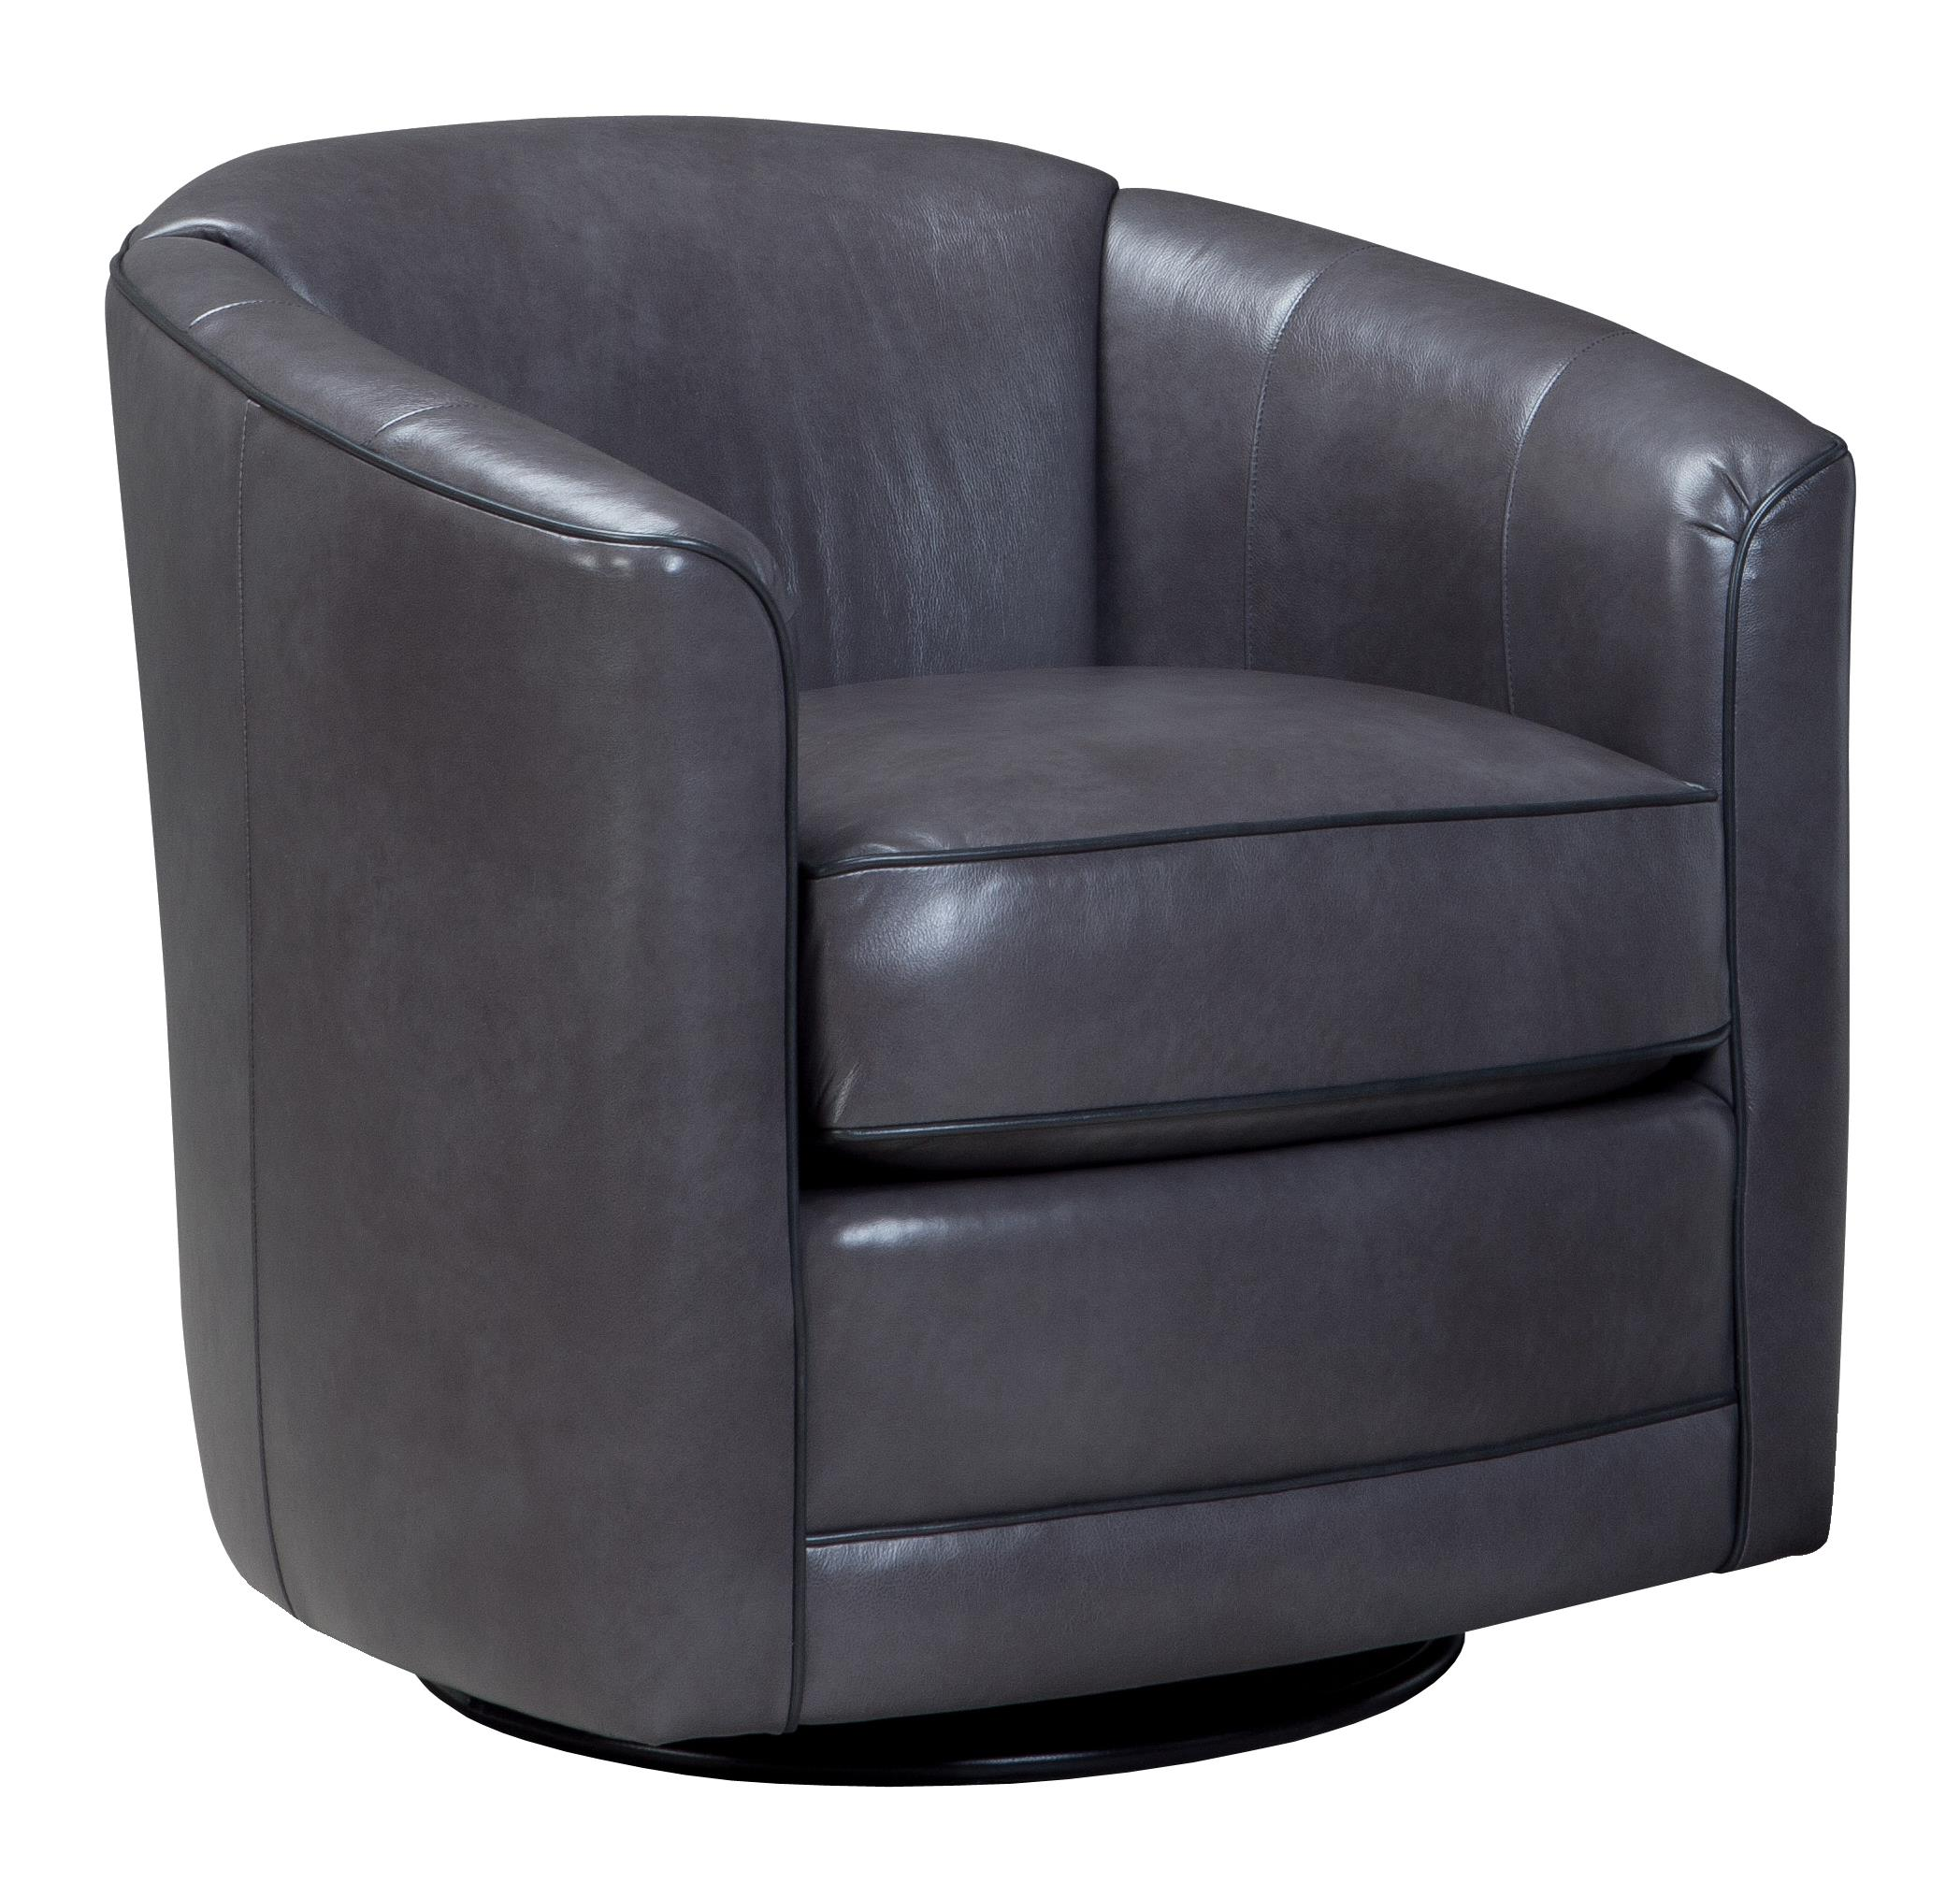 506 Swivel Chair by Smith Brothers at Pilgrim Furniture City